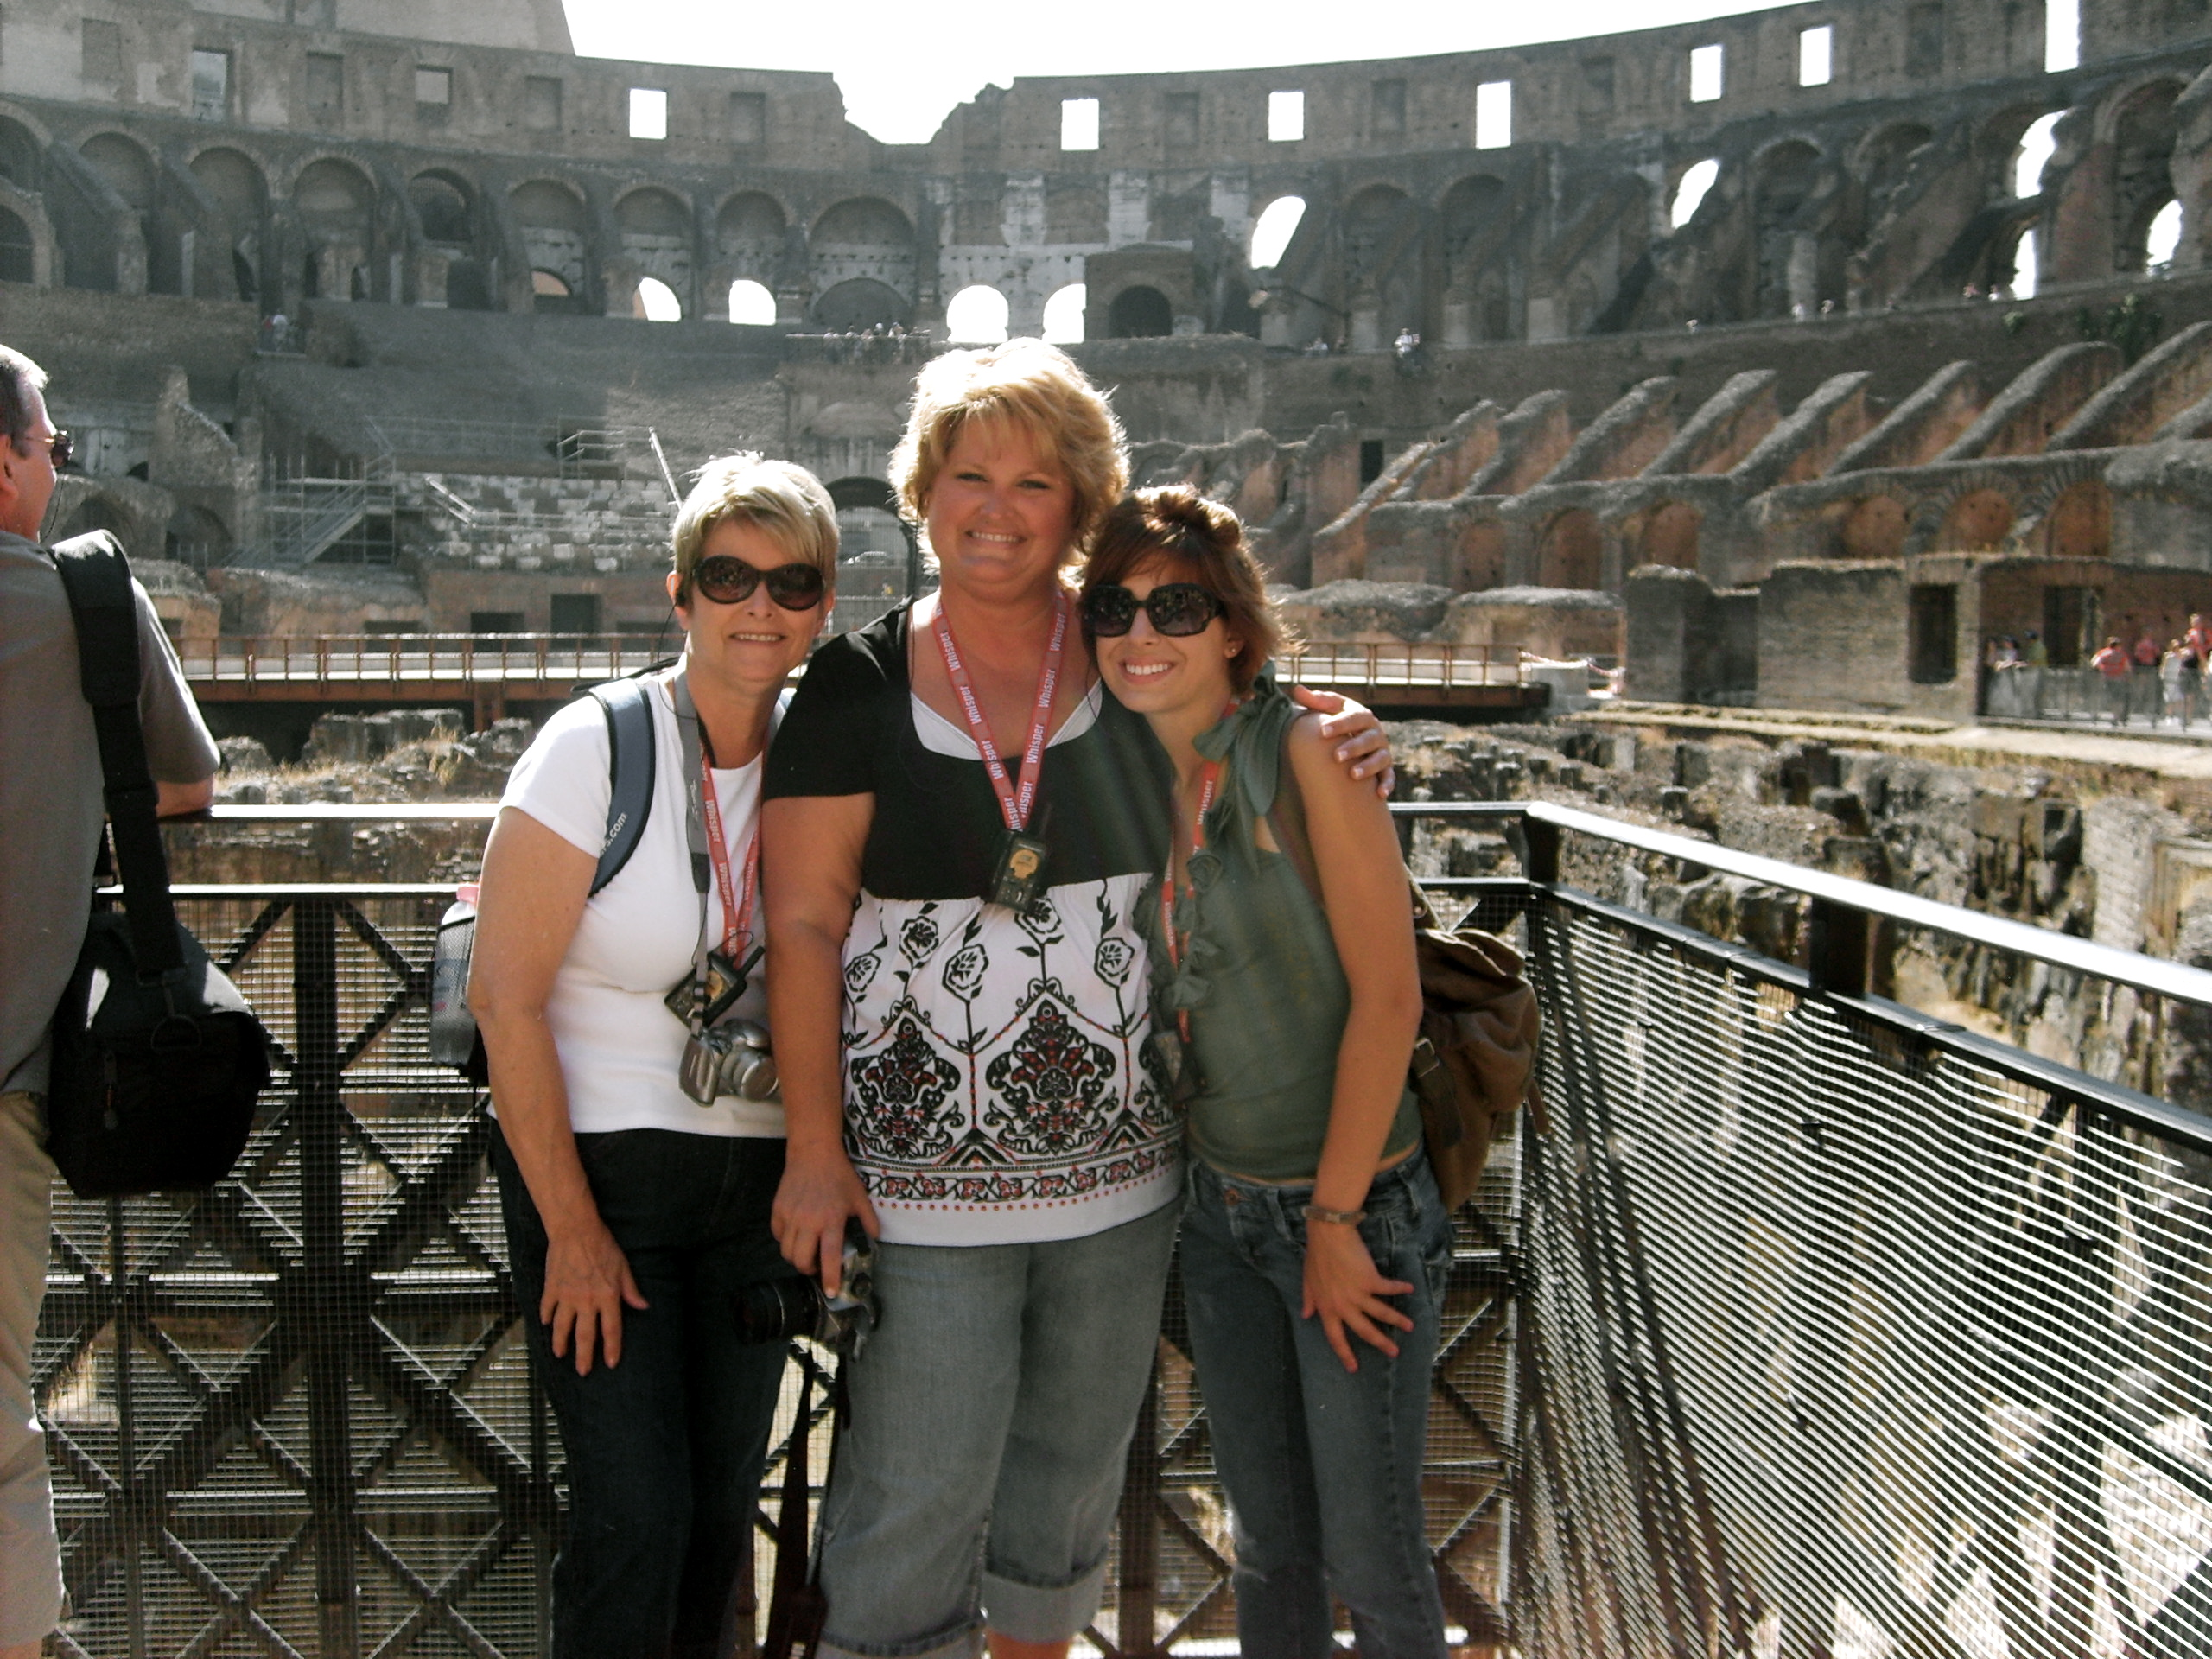 Us in the Colosseum